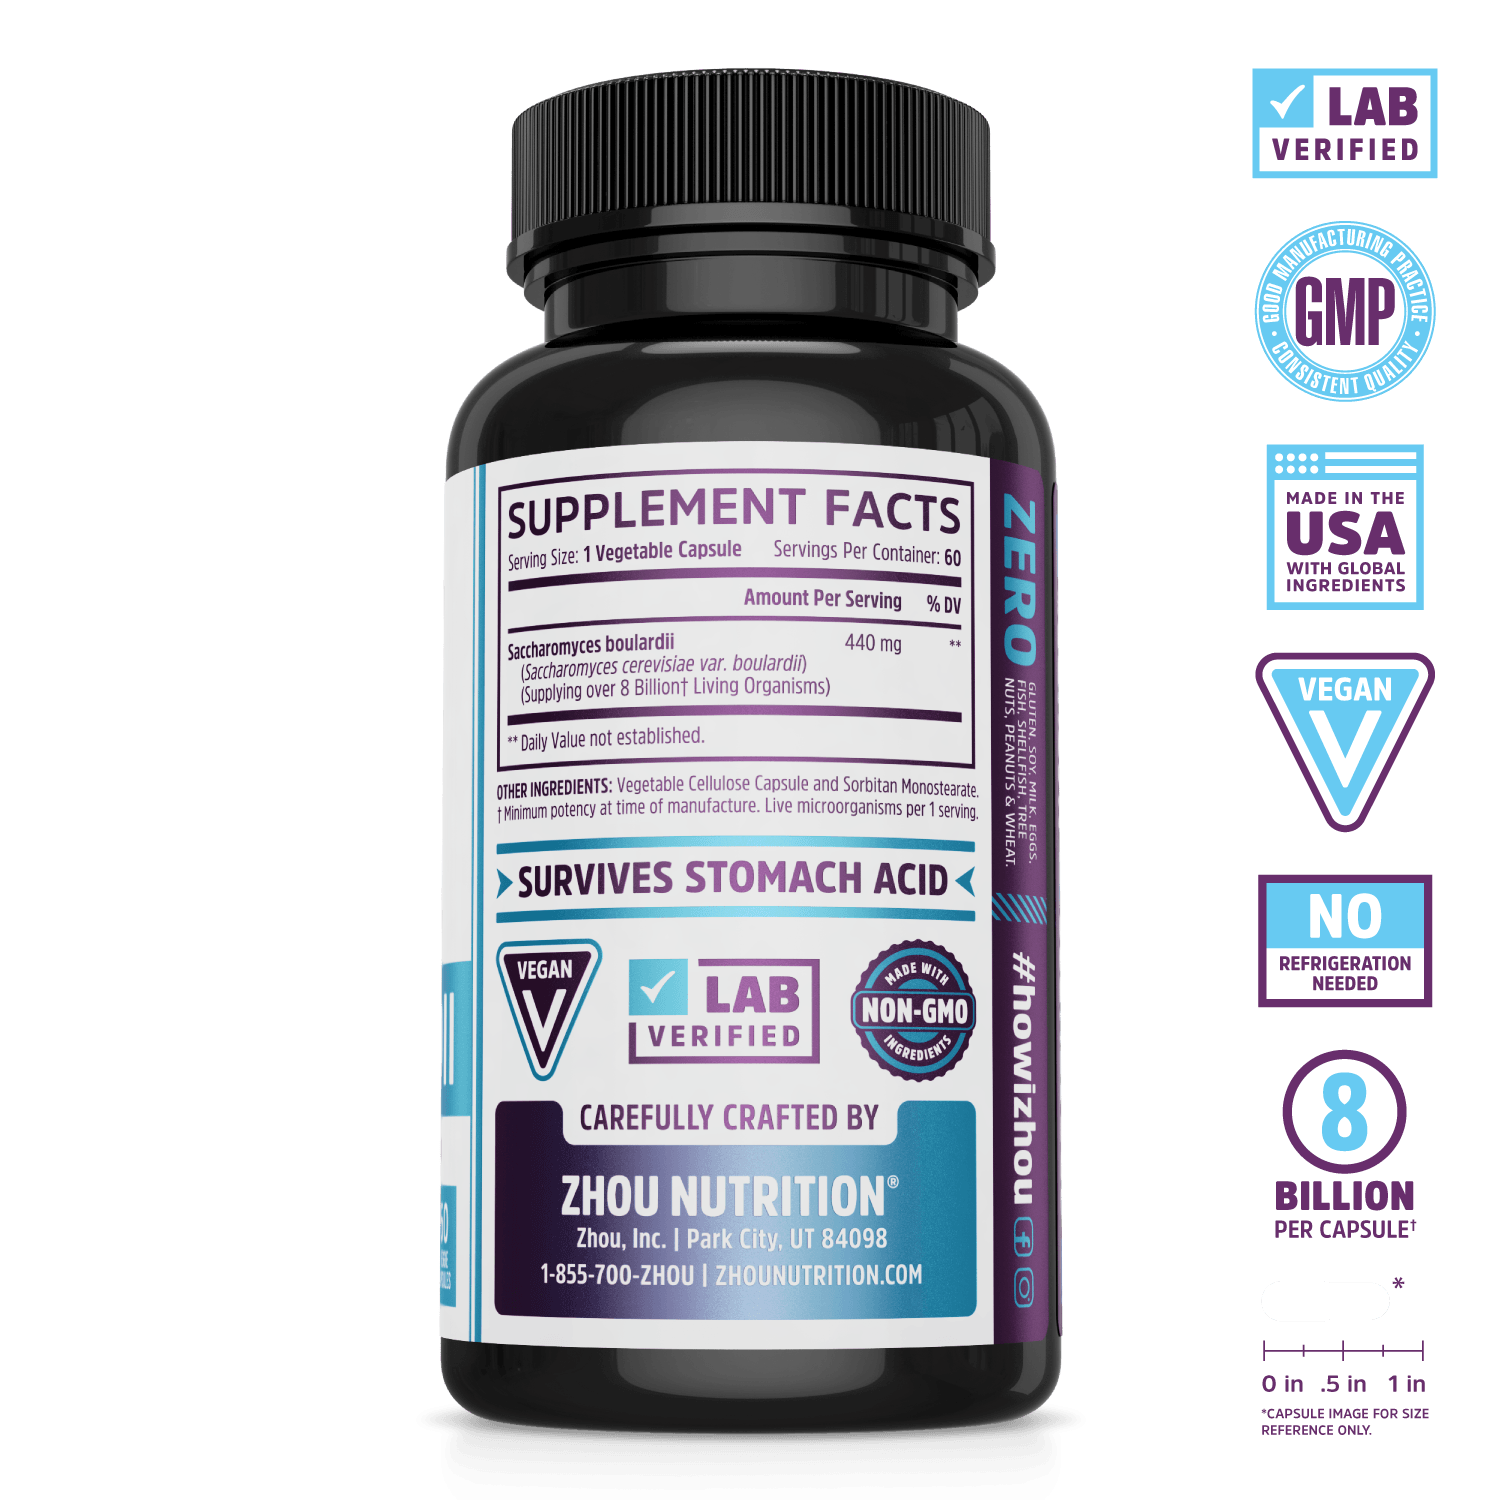 S. Boulardii Probiotic for Gut Health. Lab verified, good manufacturing practices, made in the USA with global ingredients, vegan, no refrigeration needed, 8 billion per capsule